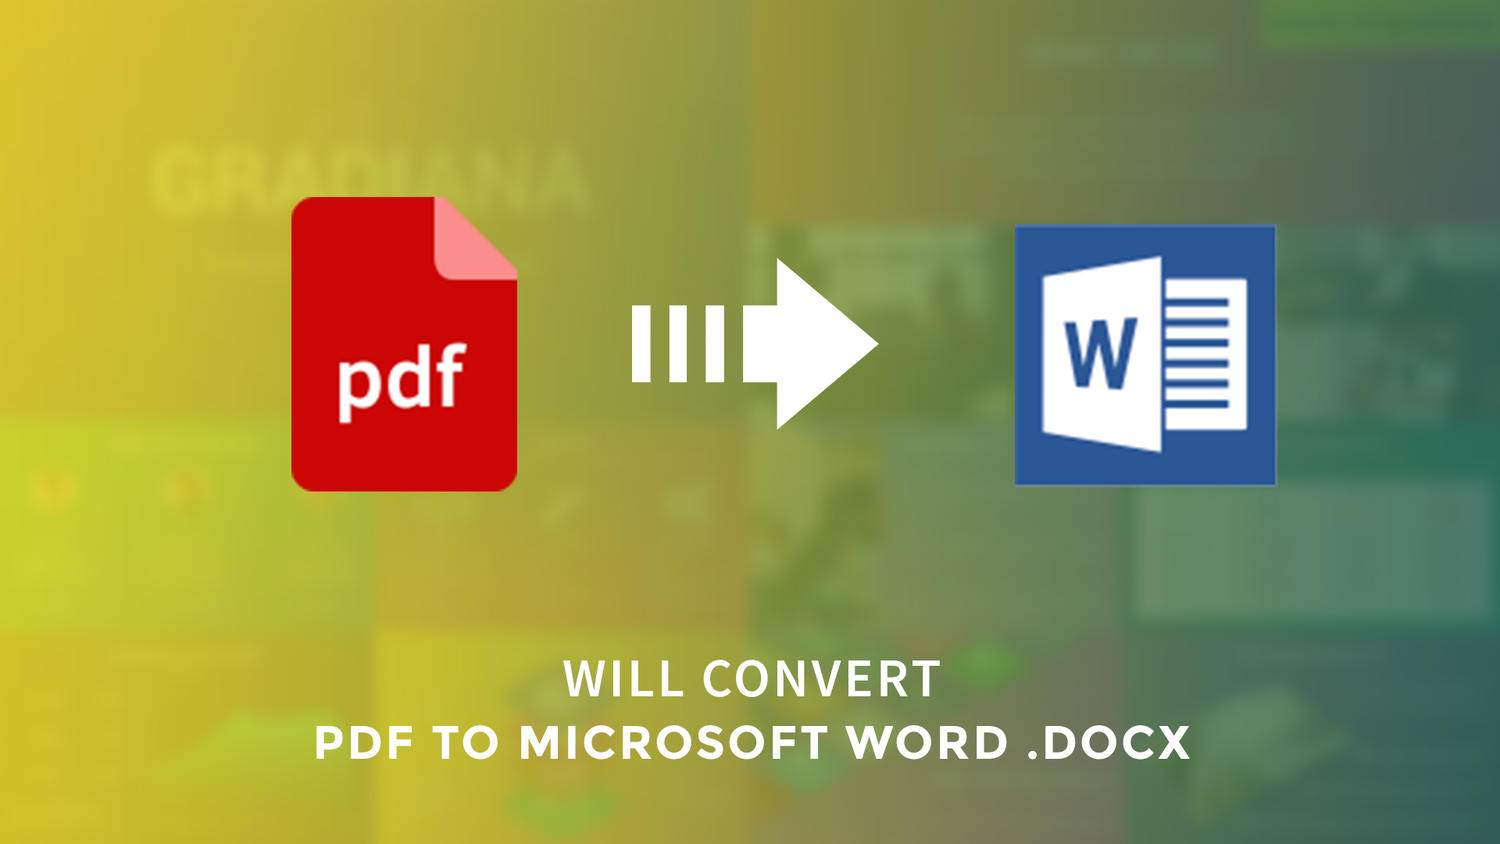 Convert PDF to Microsoft Word by arvaone - 109339